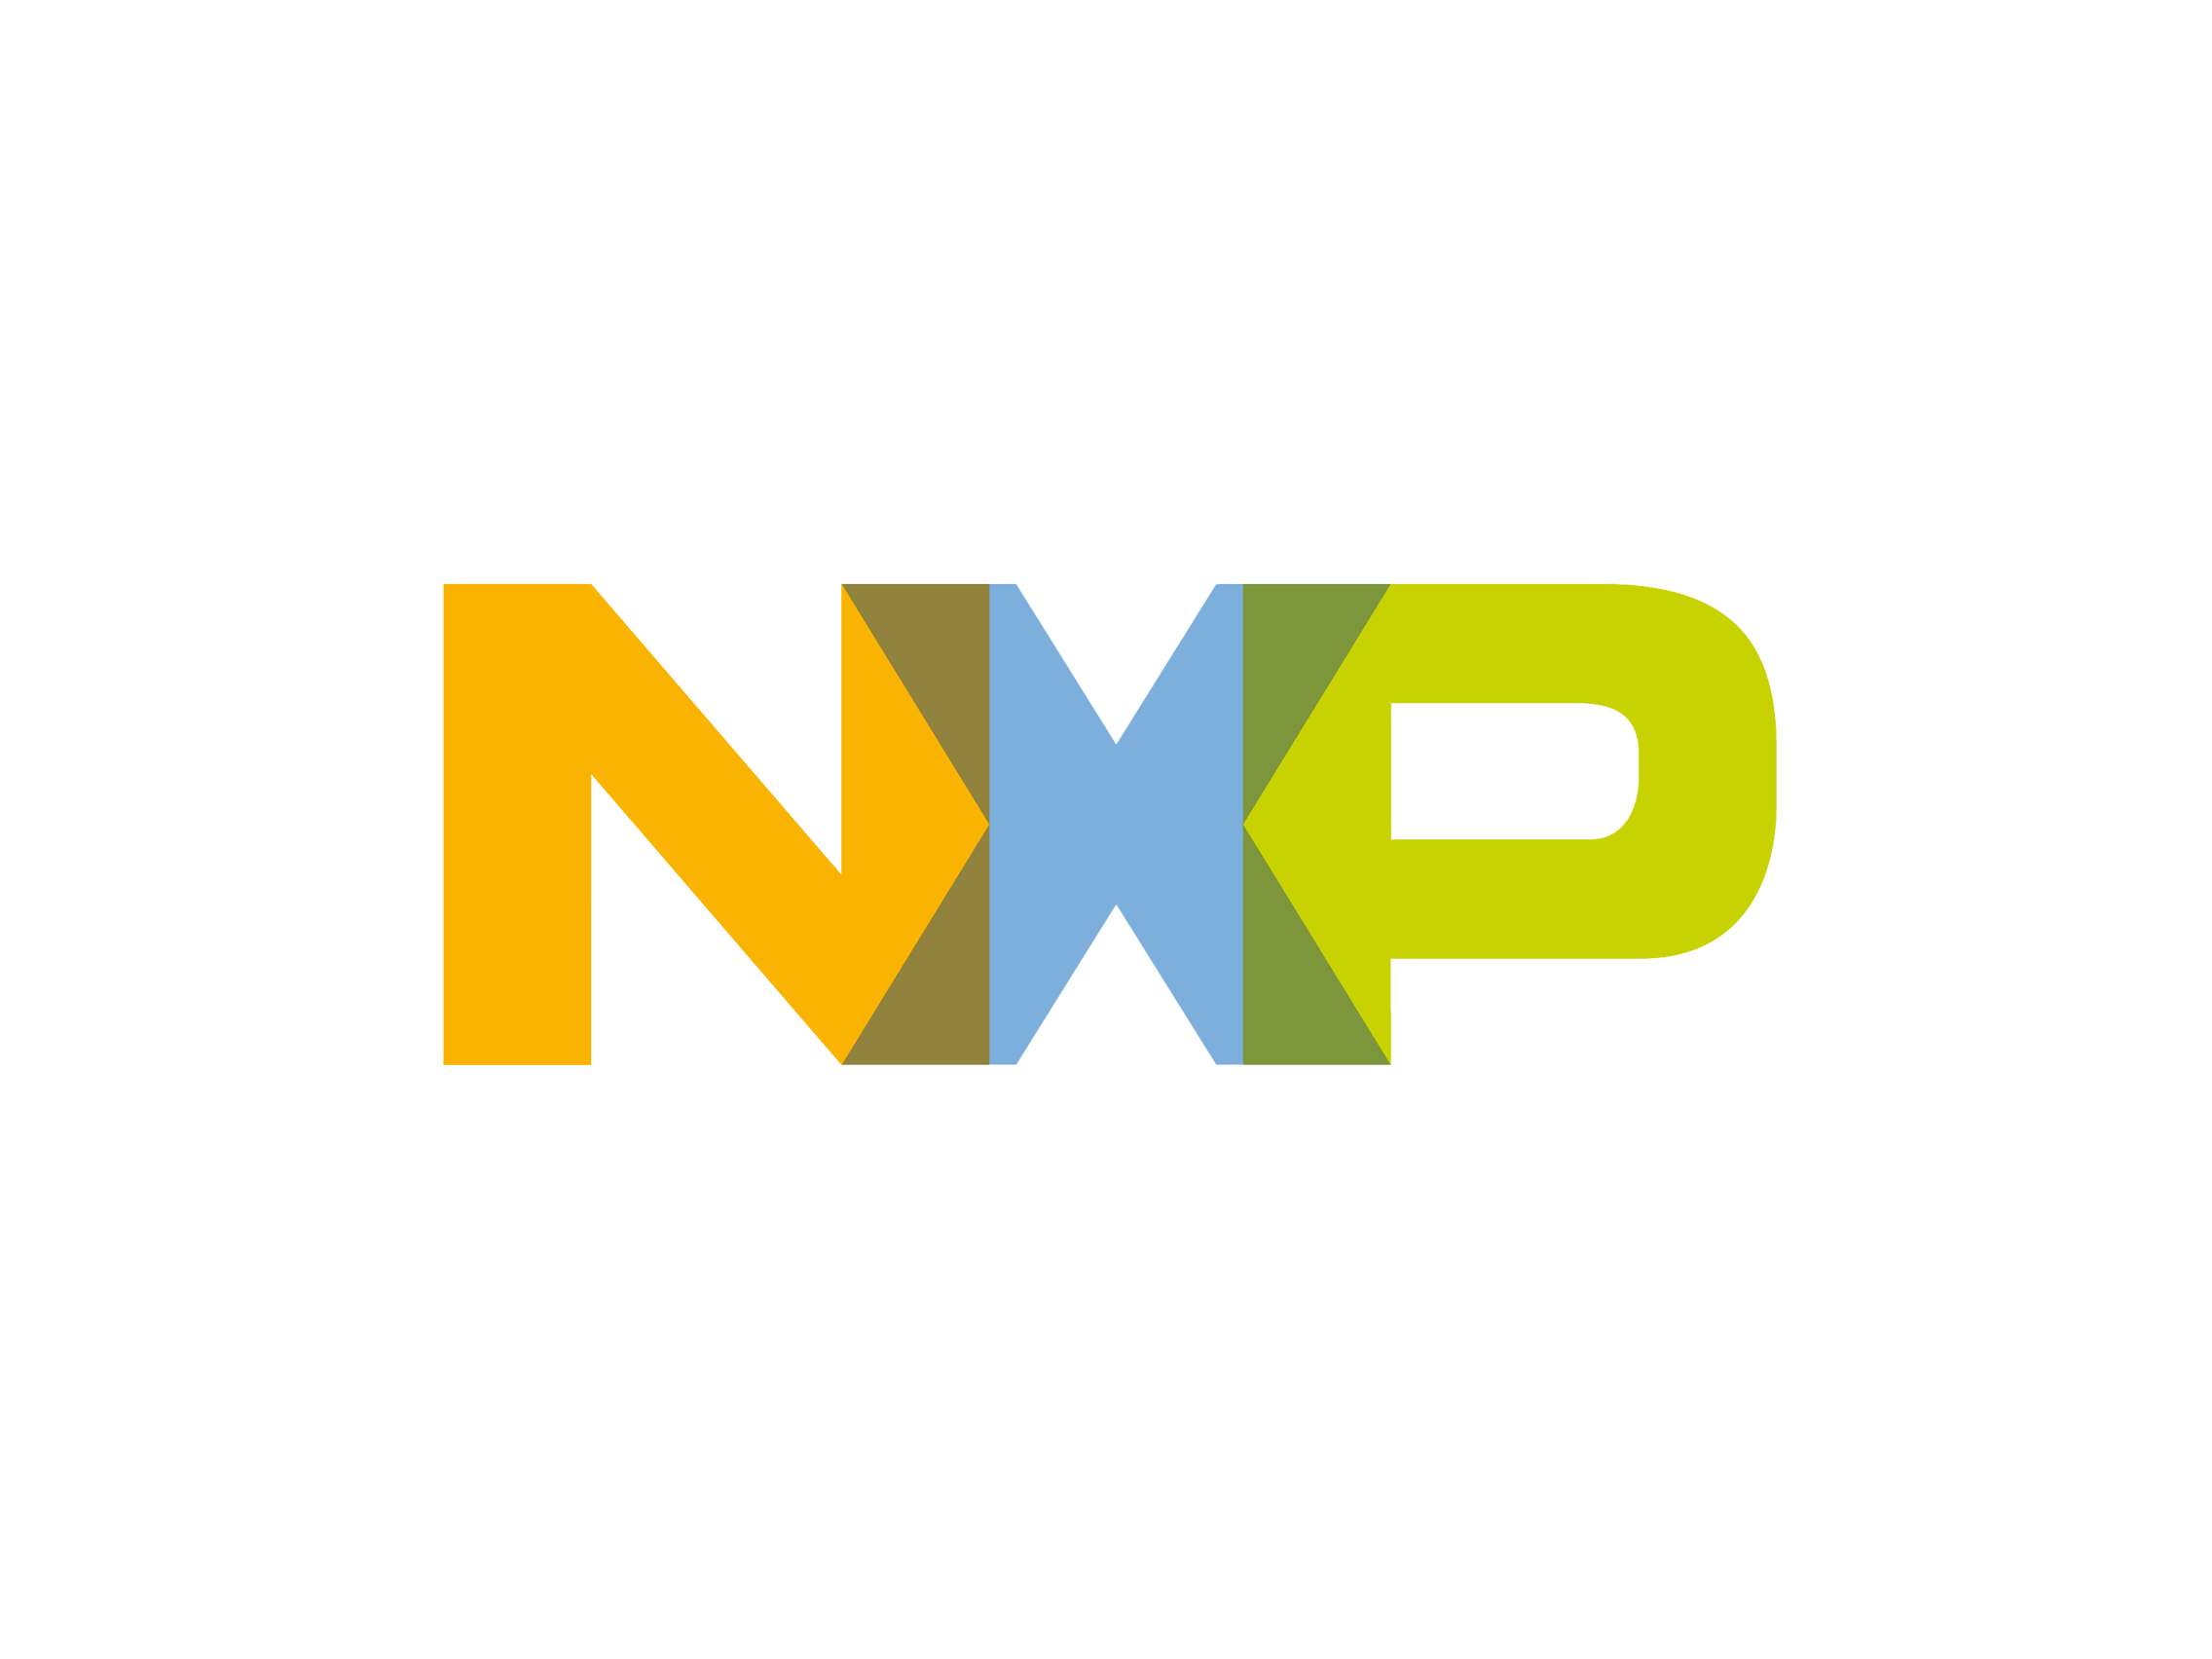 Semiconductor Logos f Nxp Logo · Semiconductor Logo